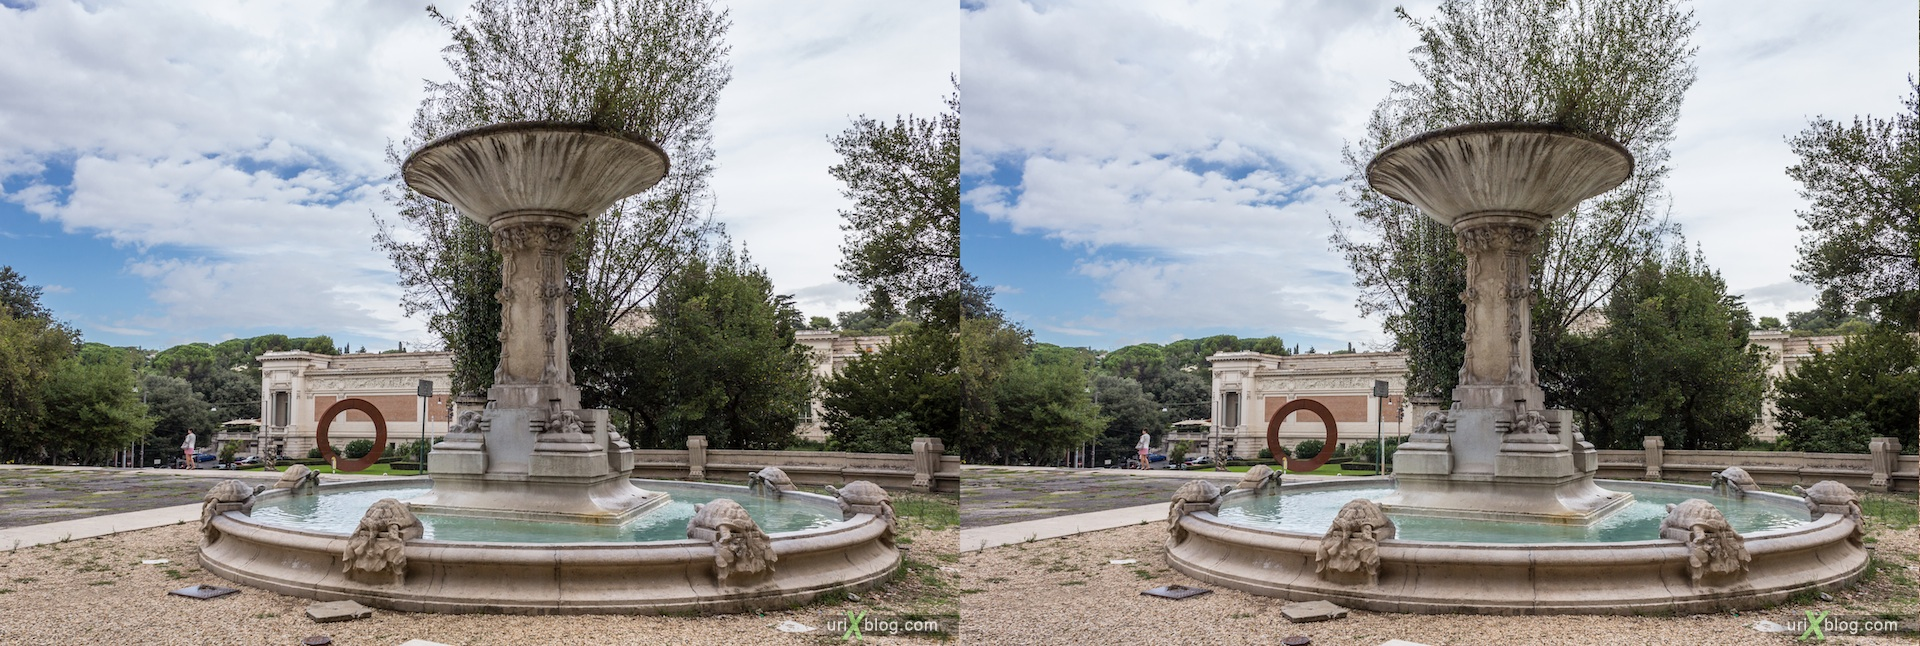 2012, fountain, park villa Borghese, Rome, Italy, 3D, stereo pair, cross-eyed, crossview, cross view stereo pair